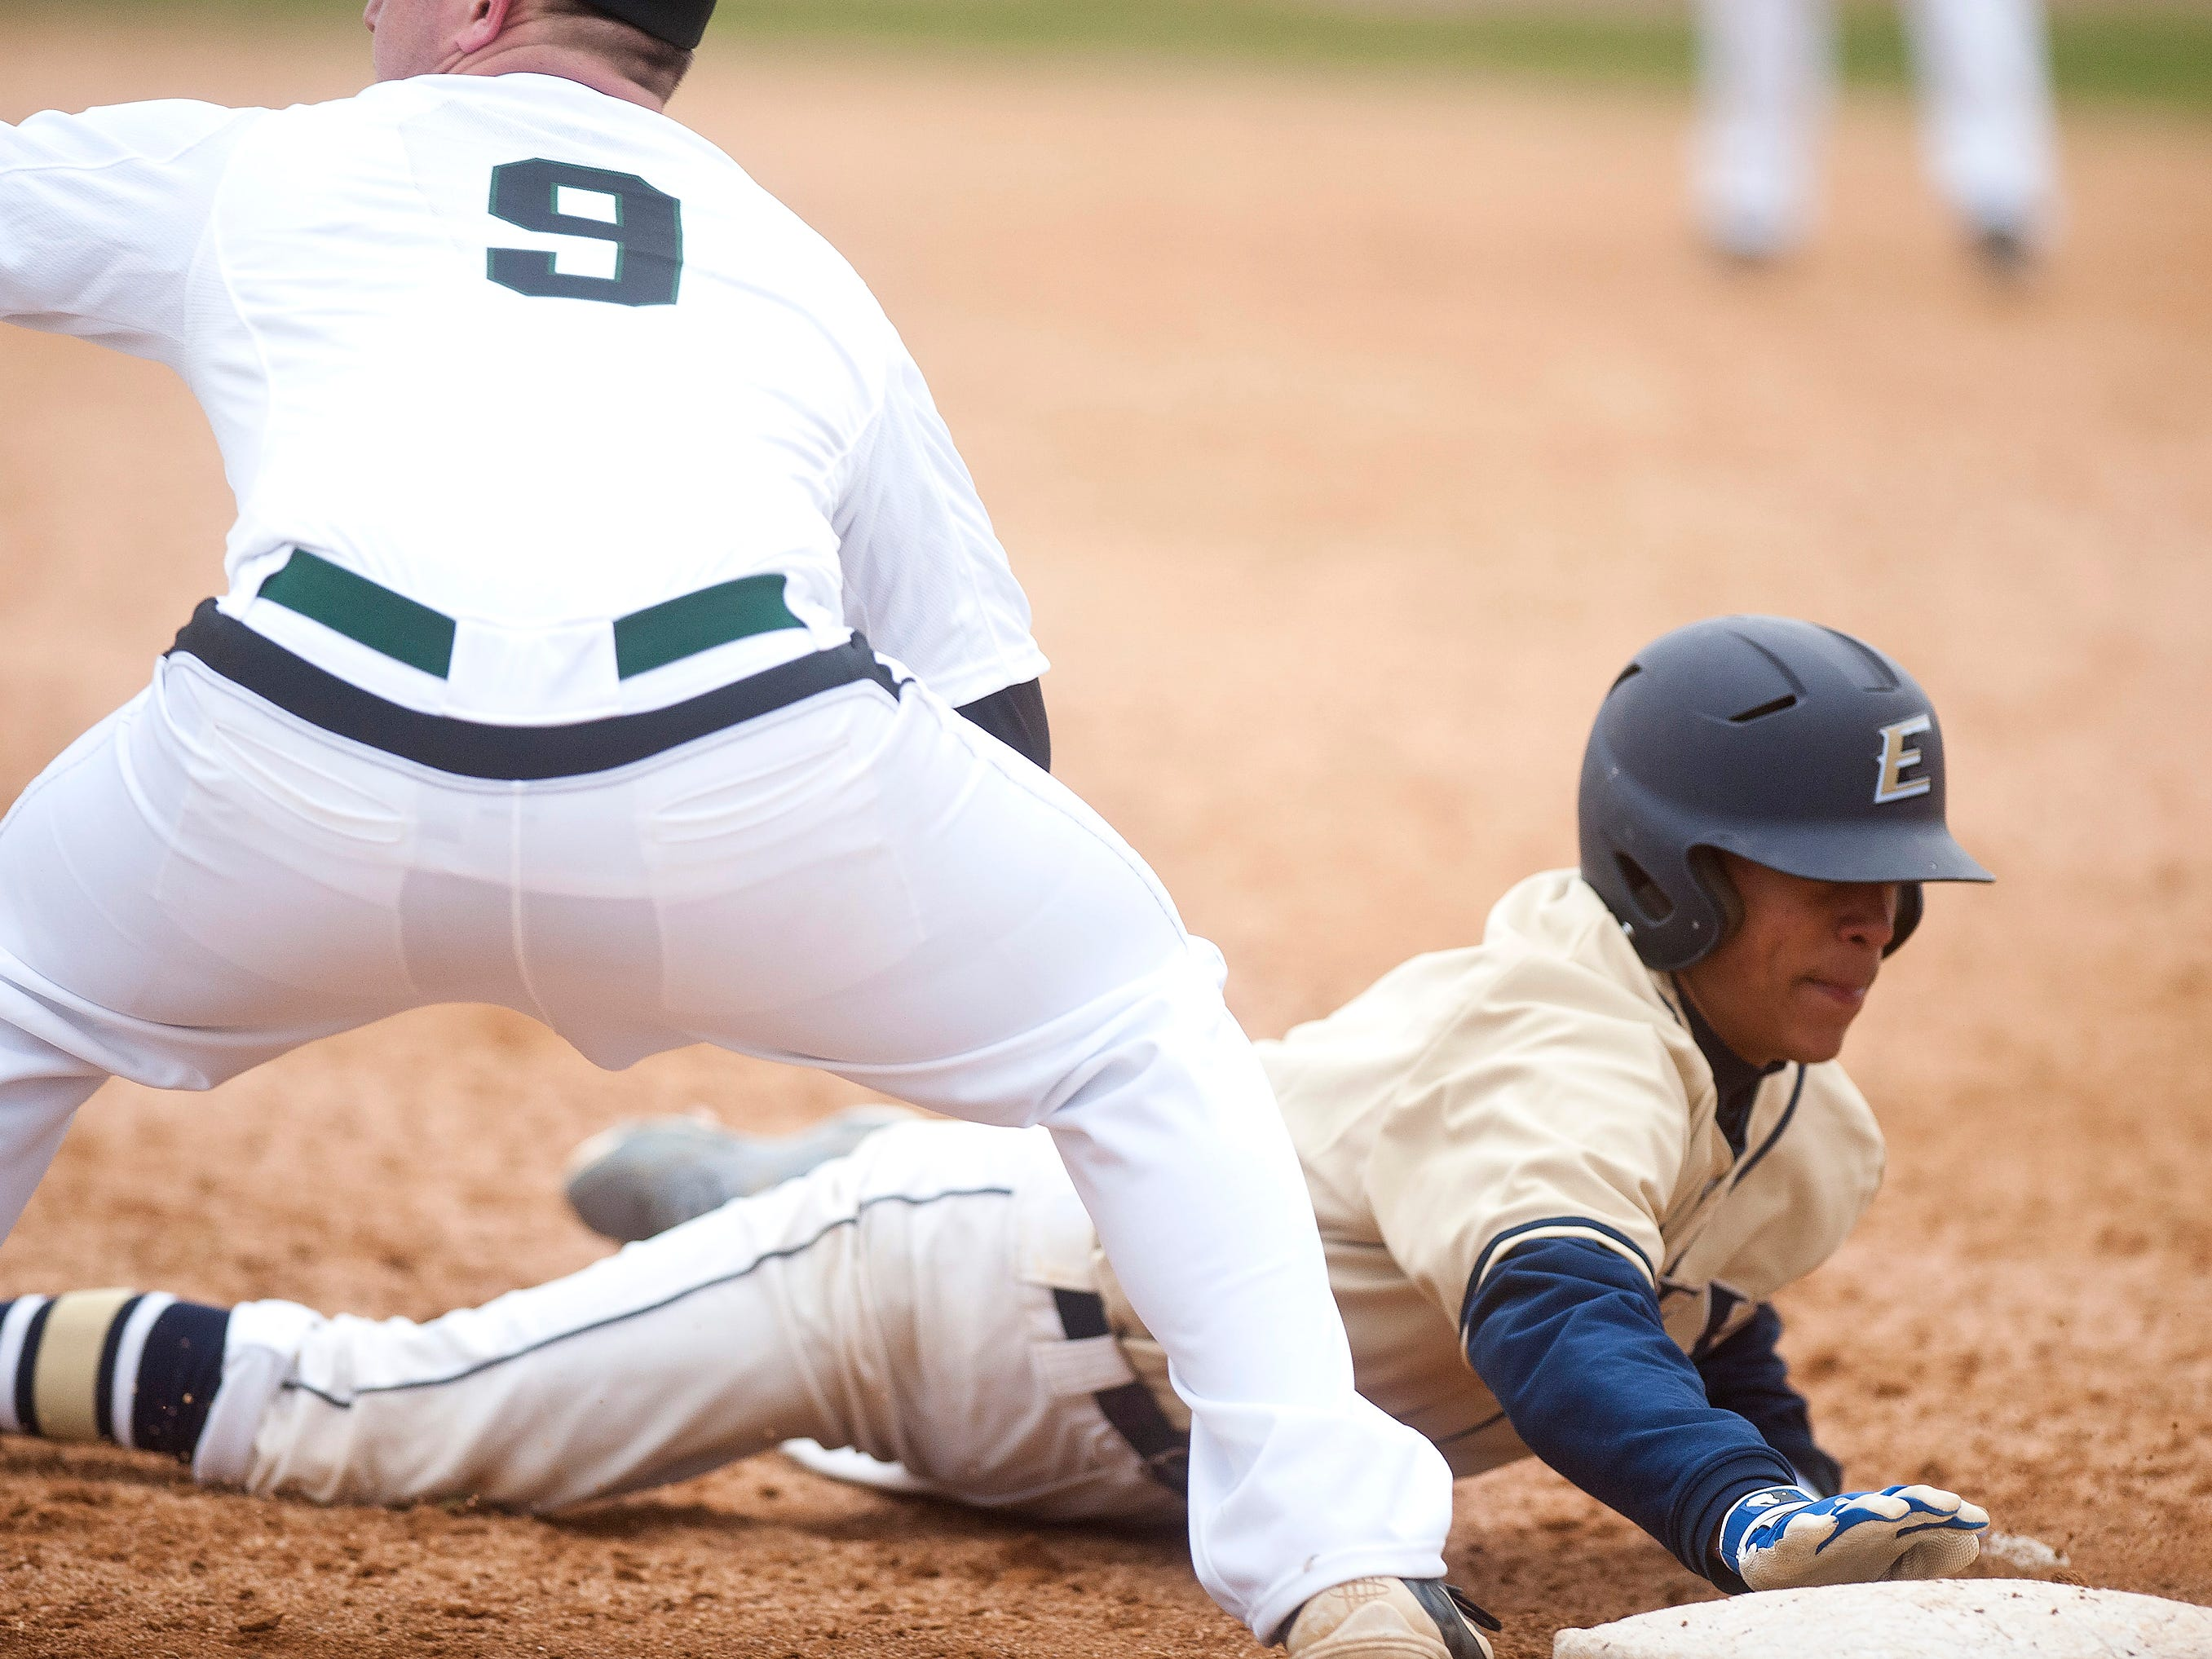 Essex's Elijah Baez, right, slides back into first base to avoid the tag of Rice's John Boardman during Friday's game in South Burlington.